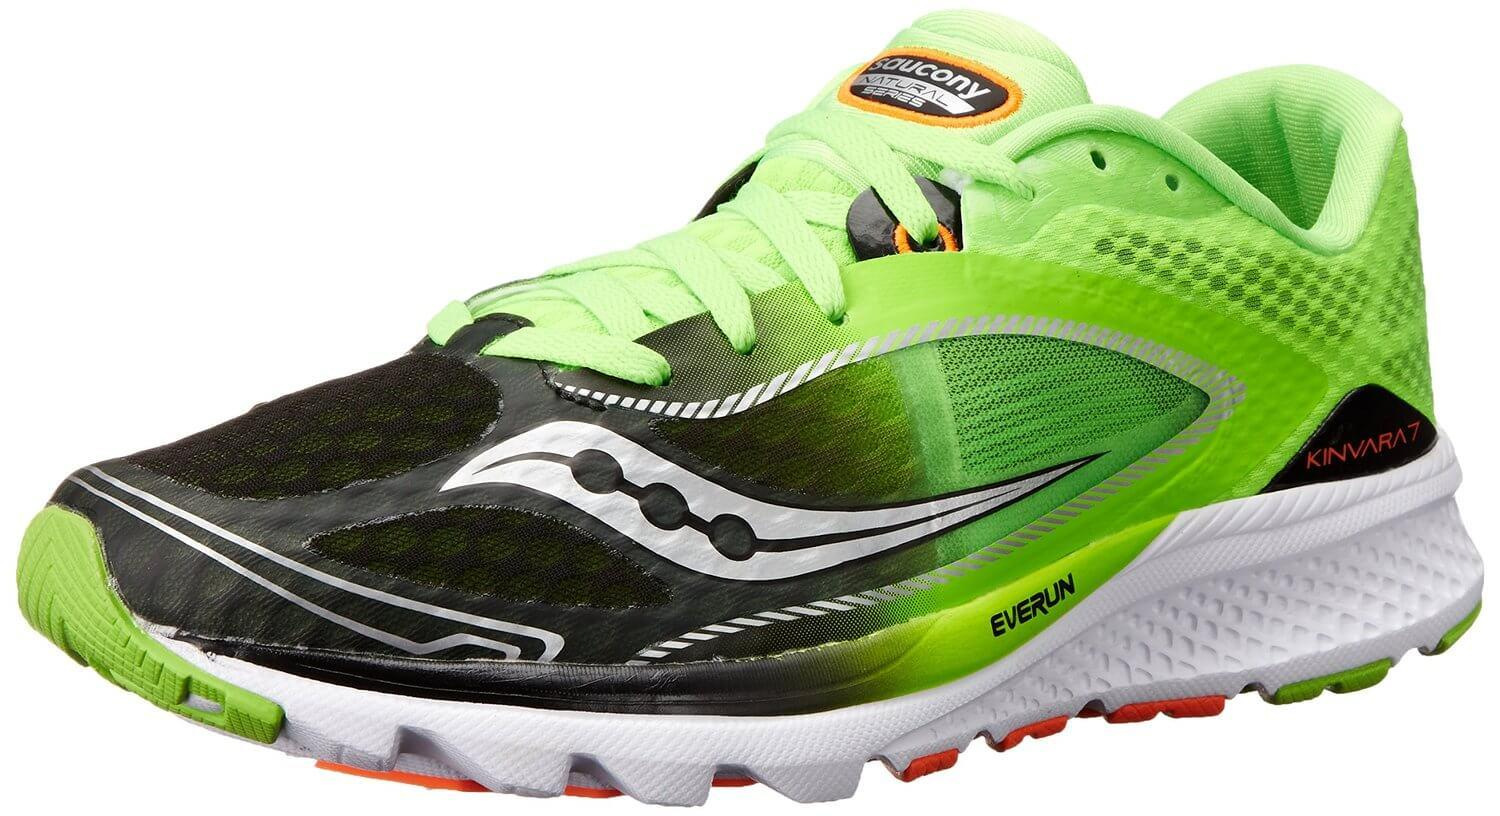 Saucony Kinvara 7 Reviewed & Rated 1